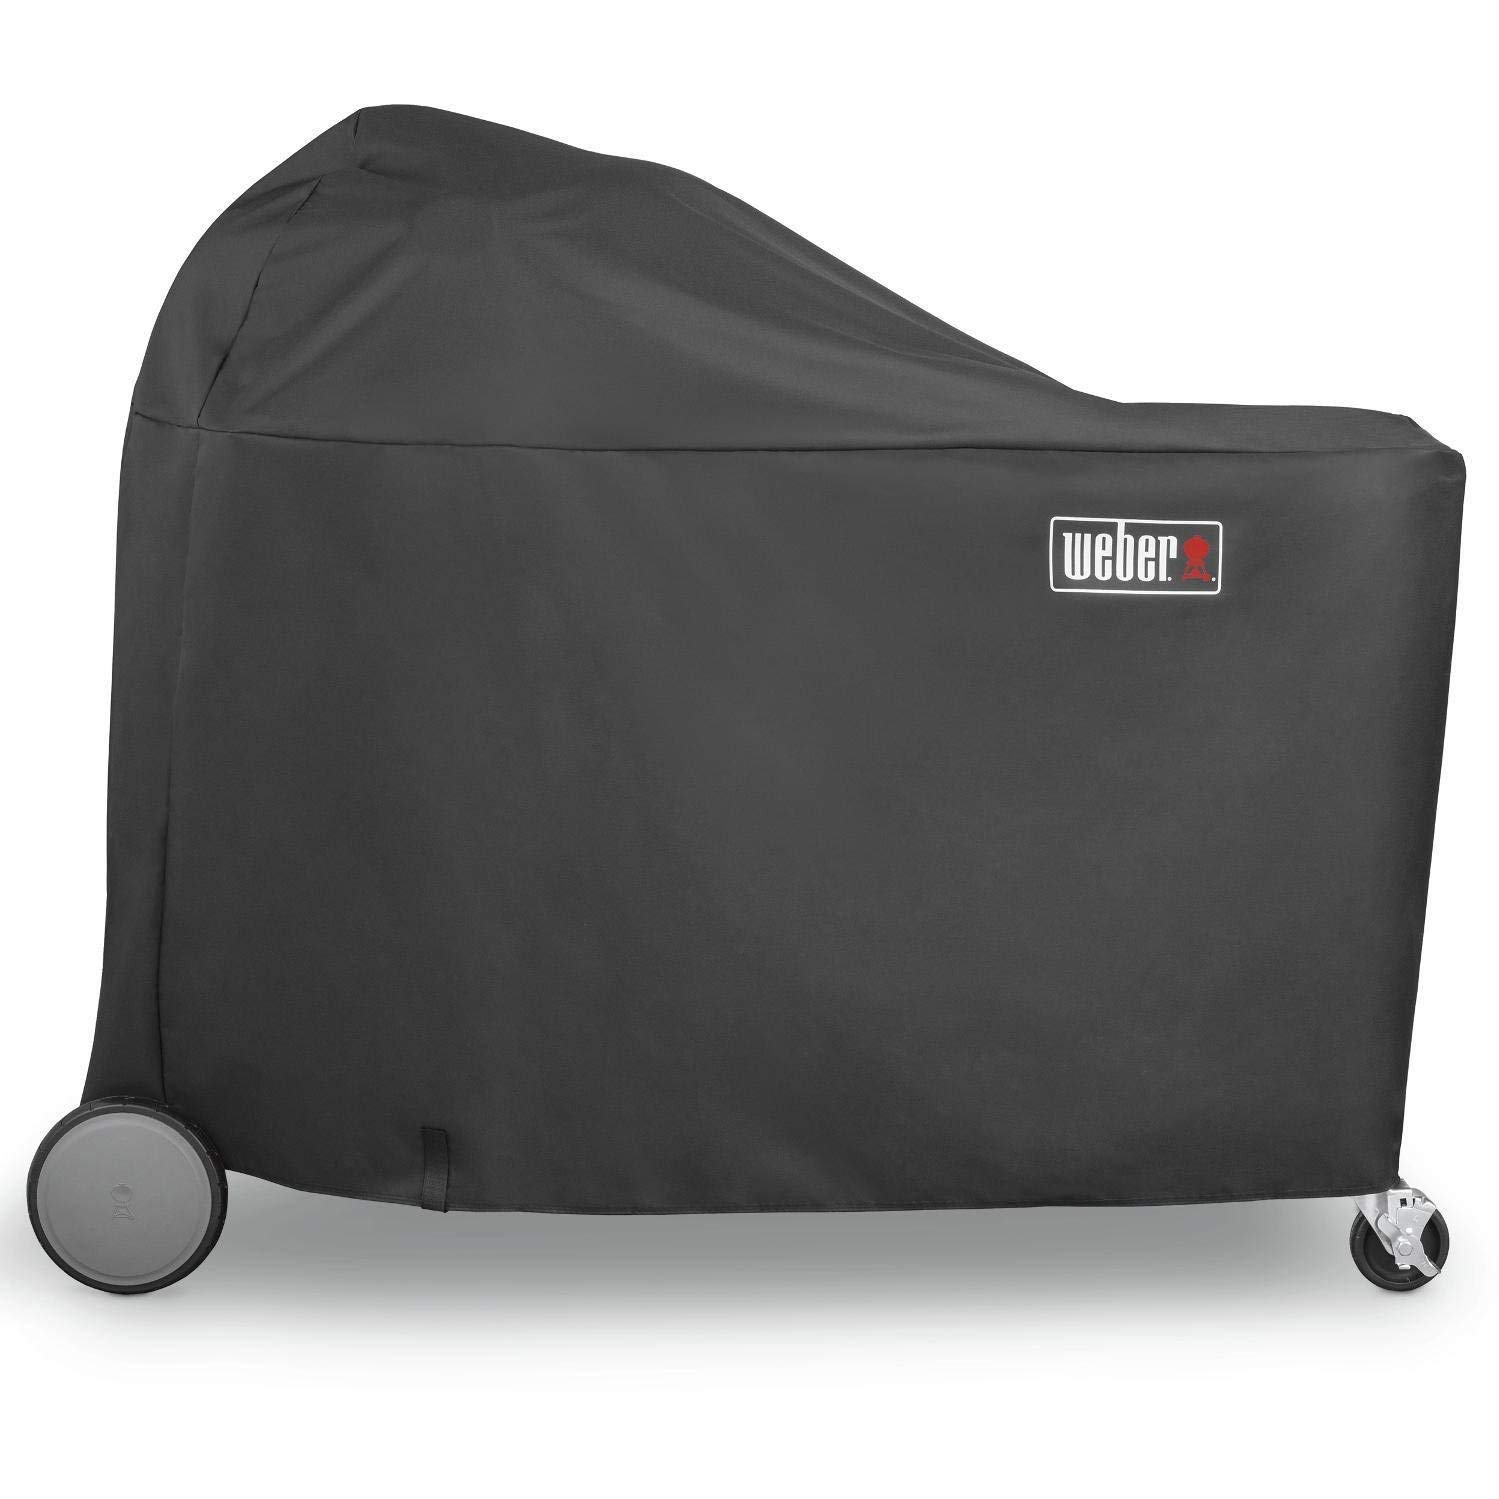 Weber Summit Charcoal Grilling Center Cover - 7174